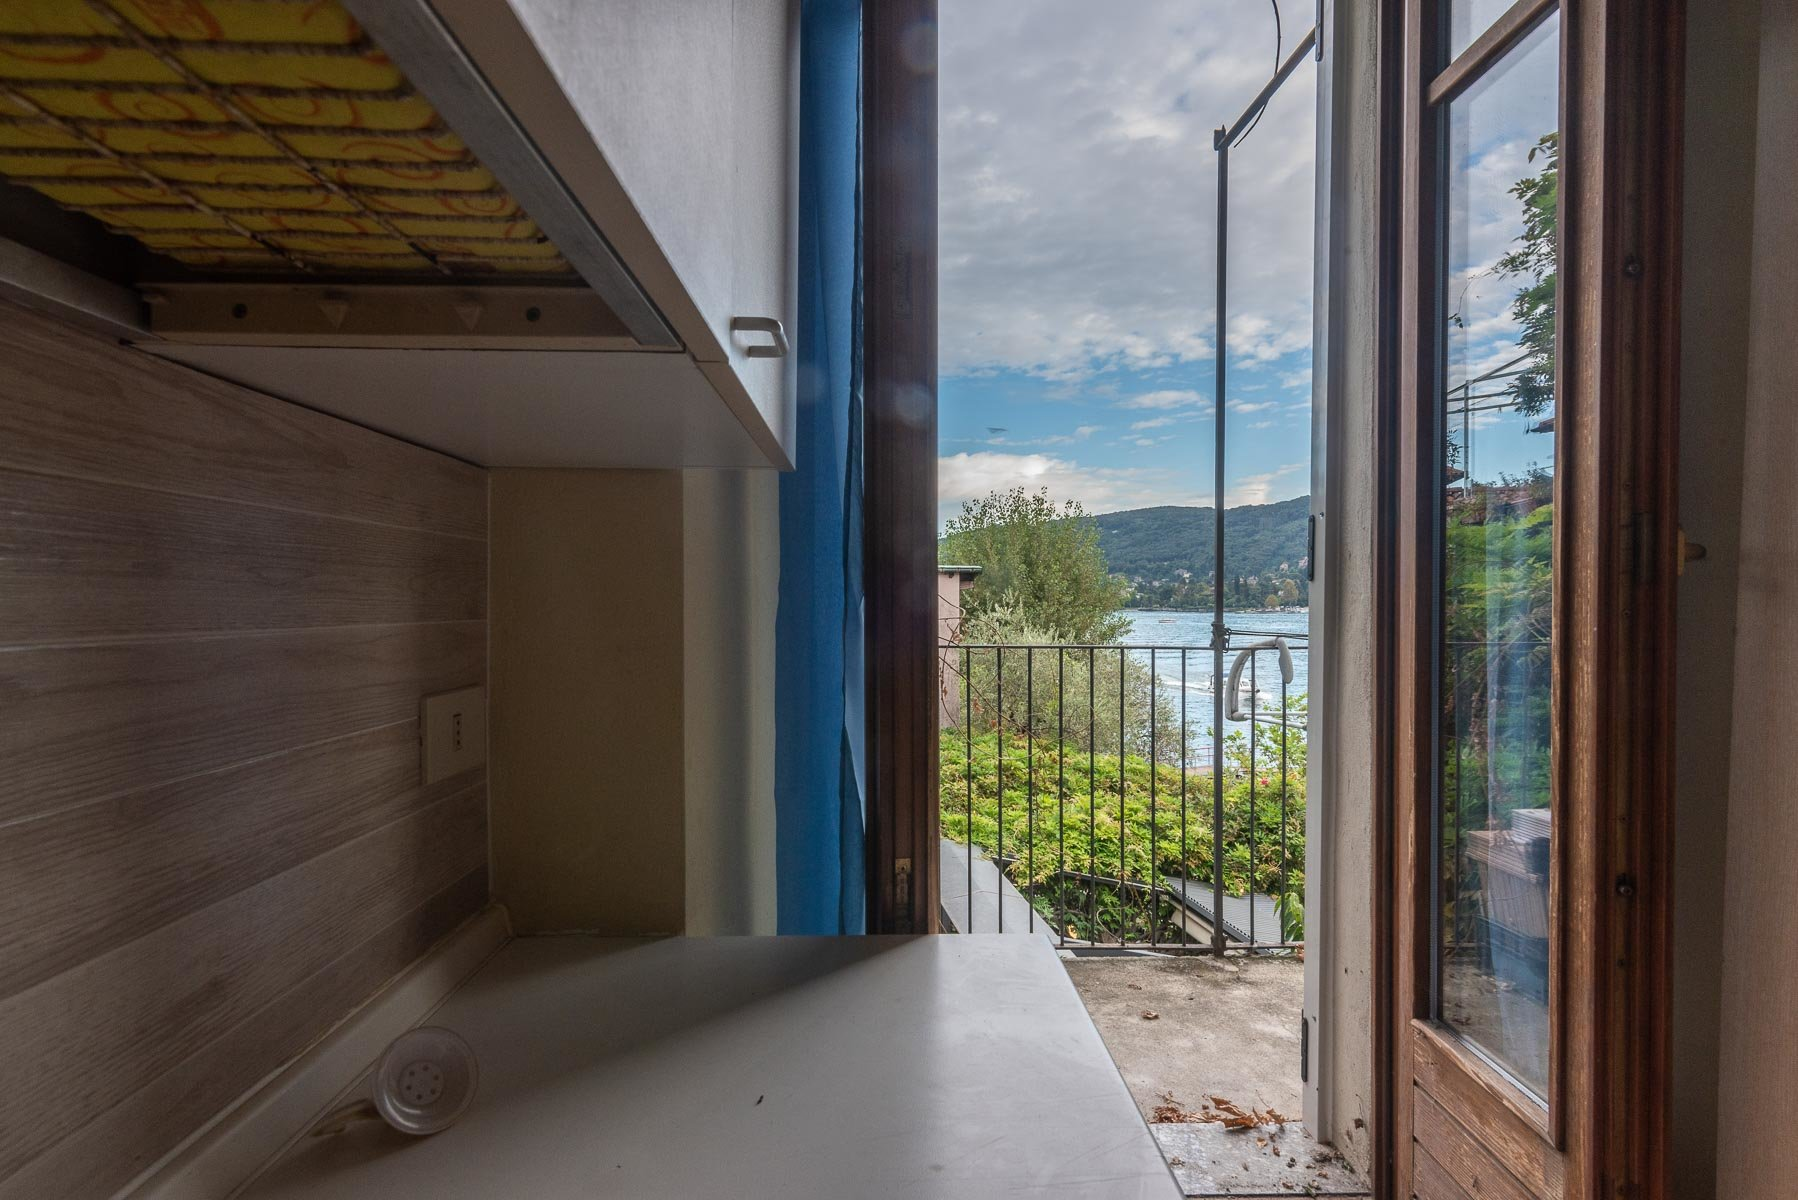 Apartment for sale in Pescatori island,Stresa-kitchen with view